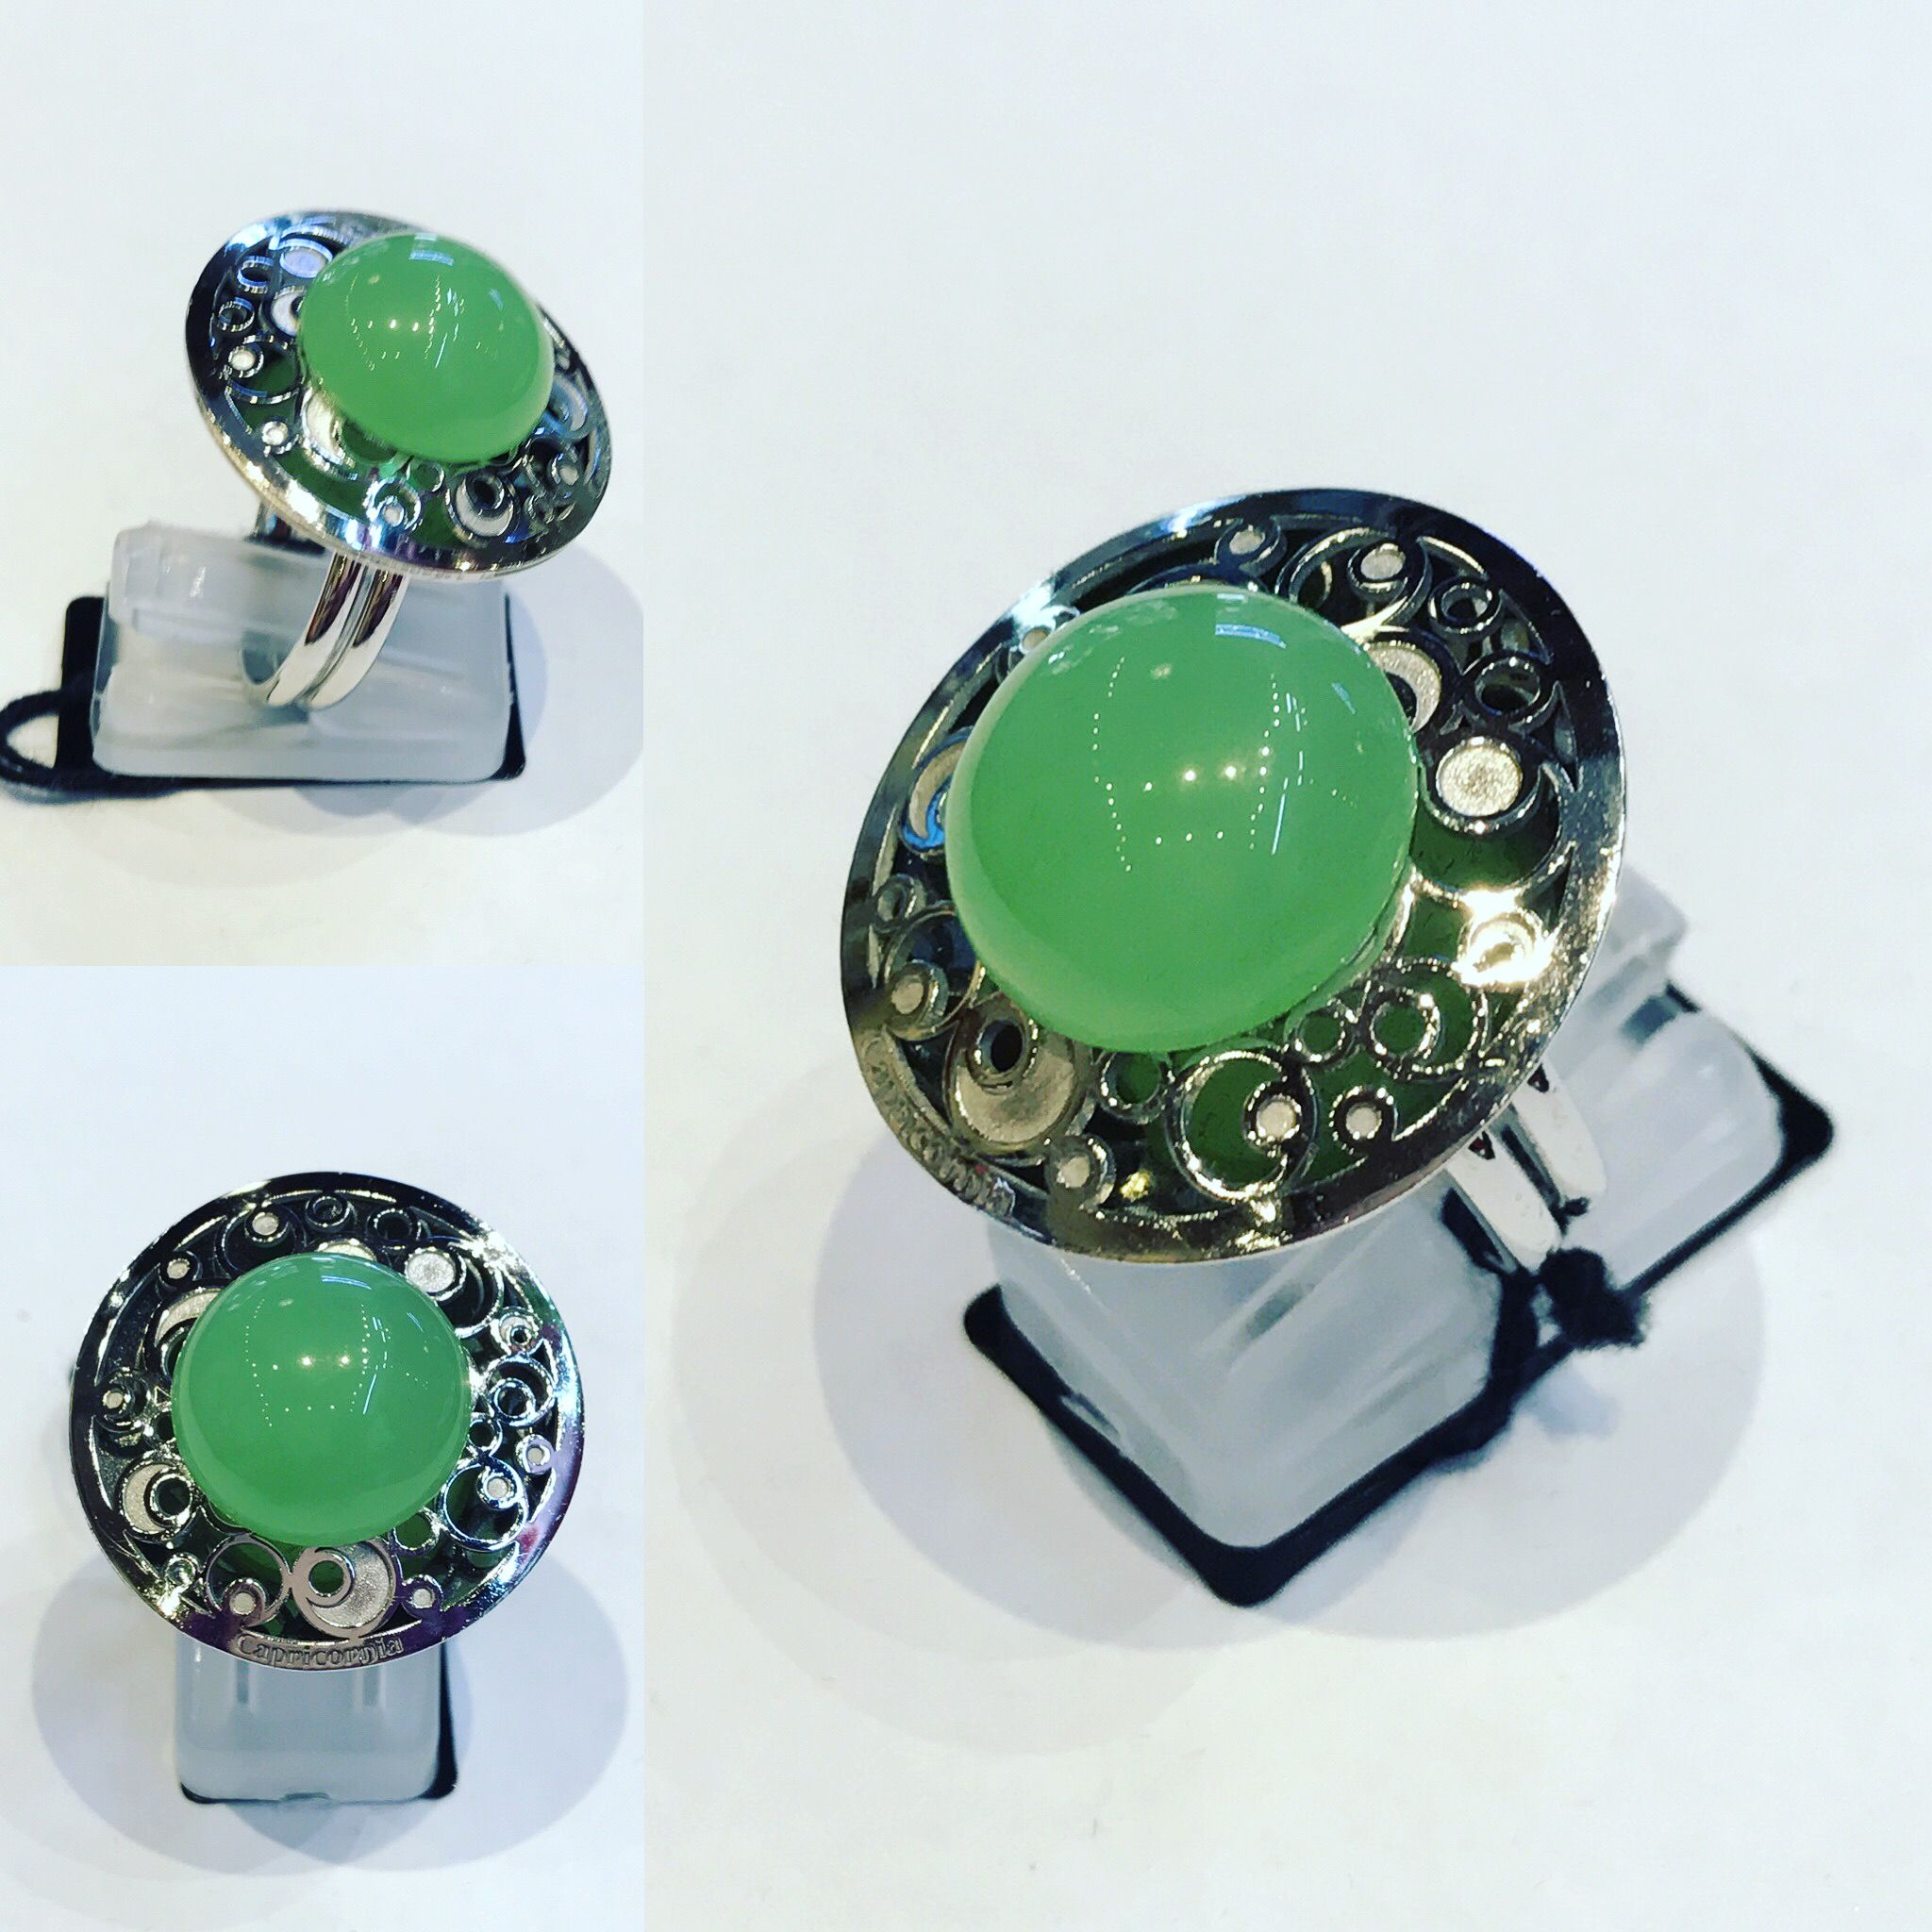 Ring in Silver 925 with Green quartz. Us size 6.75 Eu 14 Price : 129 $ Available at: Www.bangslove.com